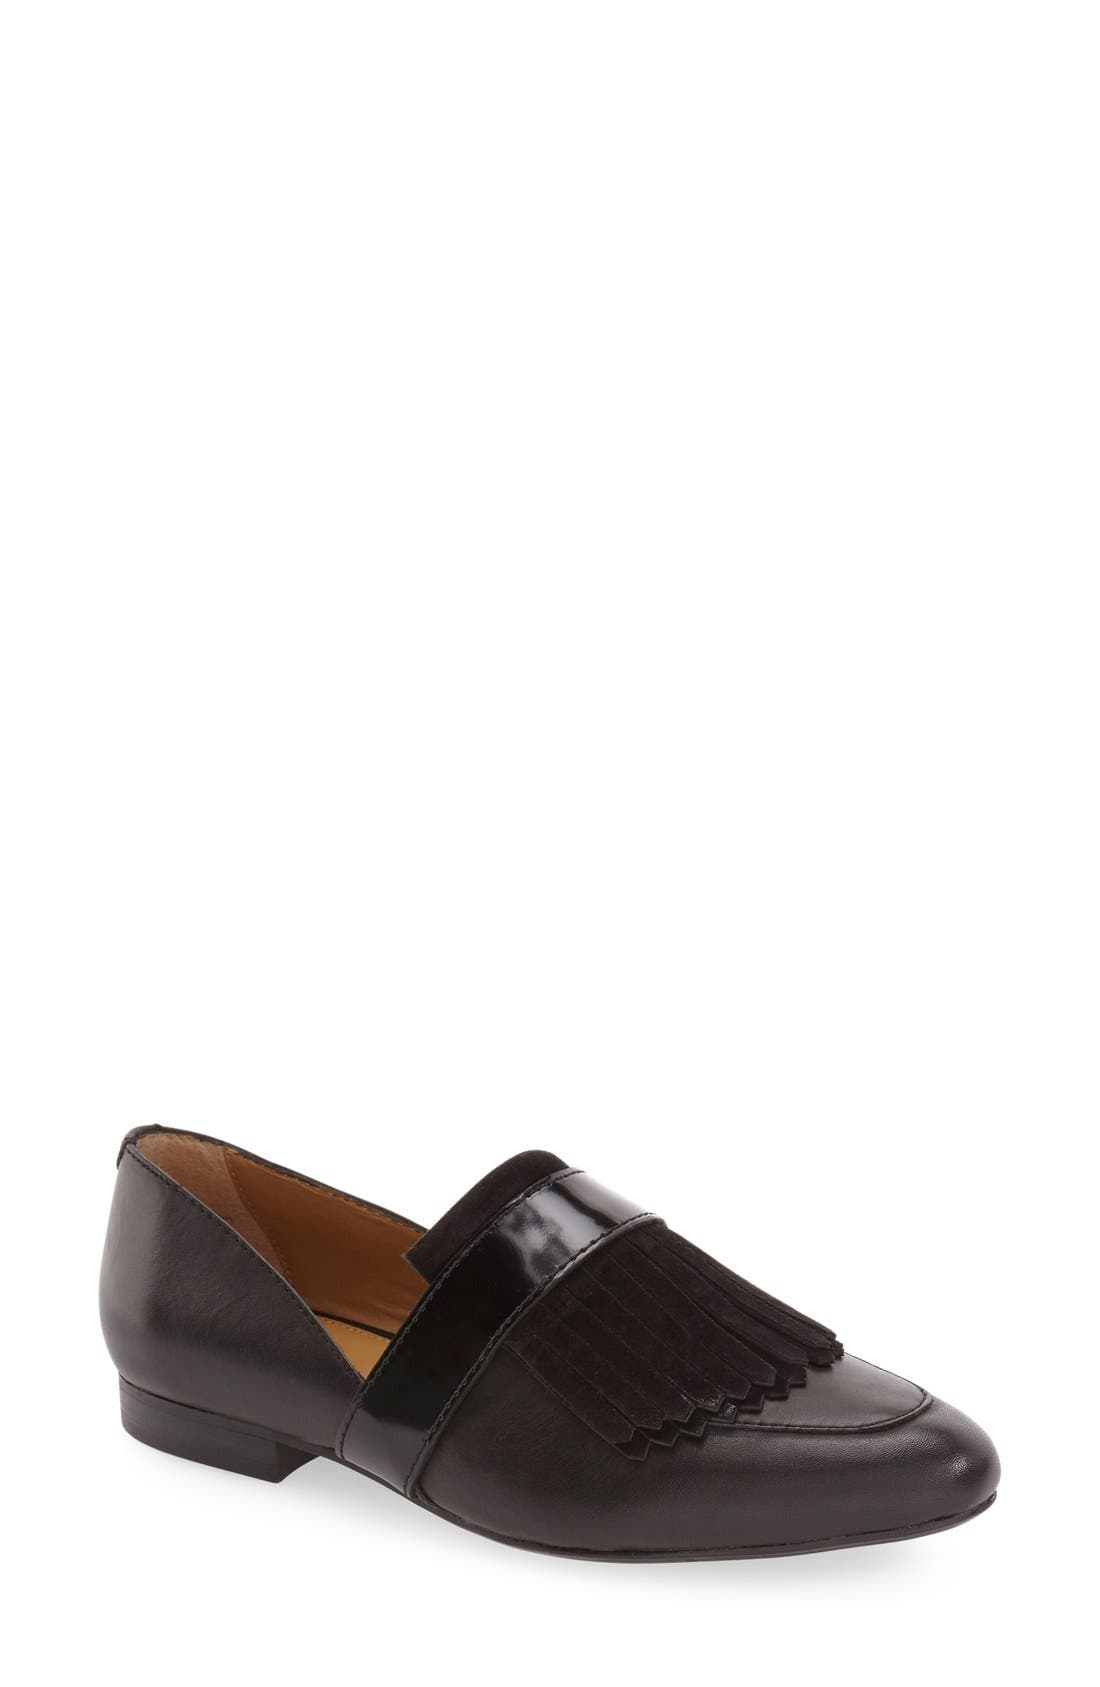 'Harlow' Kiltie Leather Loafer,                             Main thumbnail 1, color,                             BLACK LEATHER